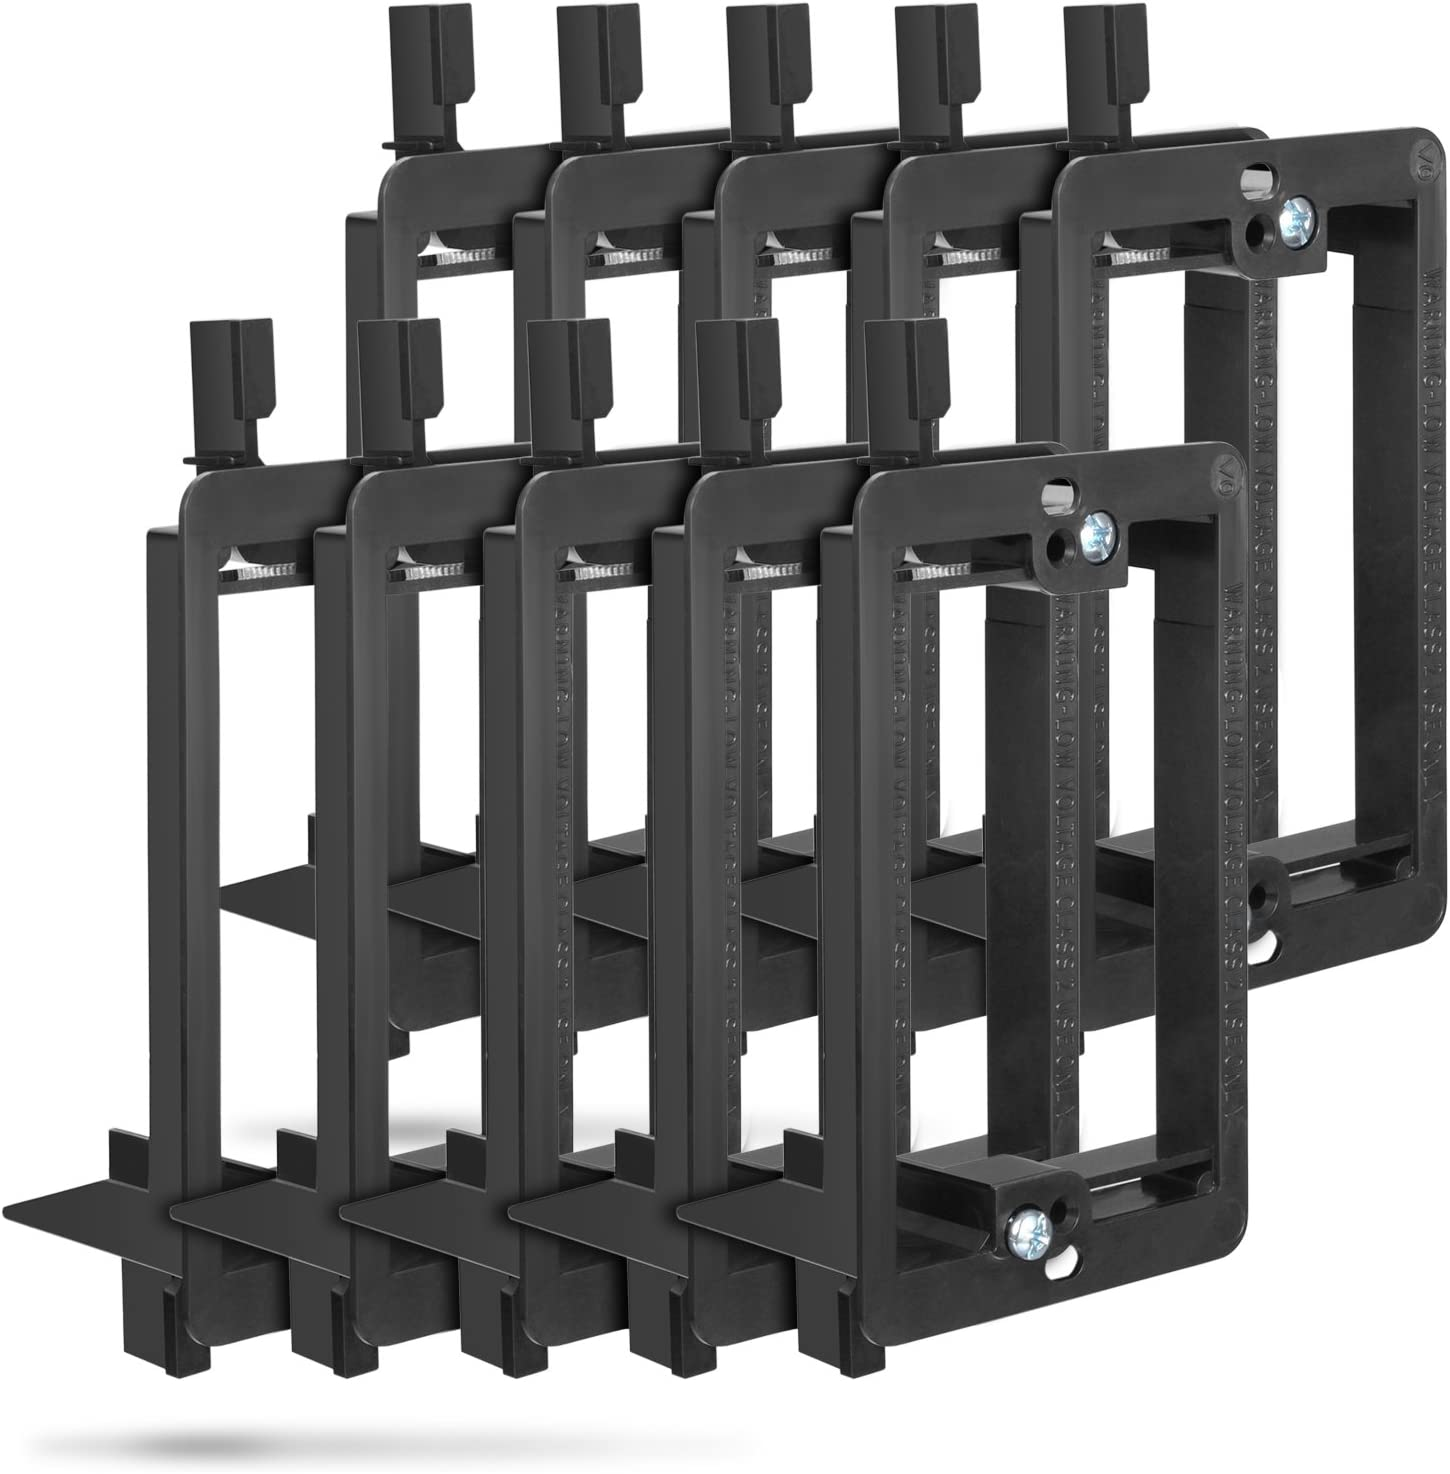 Low Voltage Mounting Bracket (1 Gang, 10 Pack), Fosmon Low Voltage Mounting Bracket (Mounting Screws Included) for Telephone Wires, Network Cables, HDMI, Coaxial, Speaker Cables